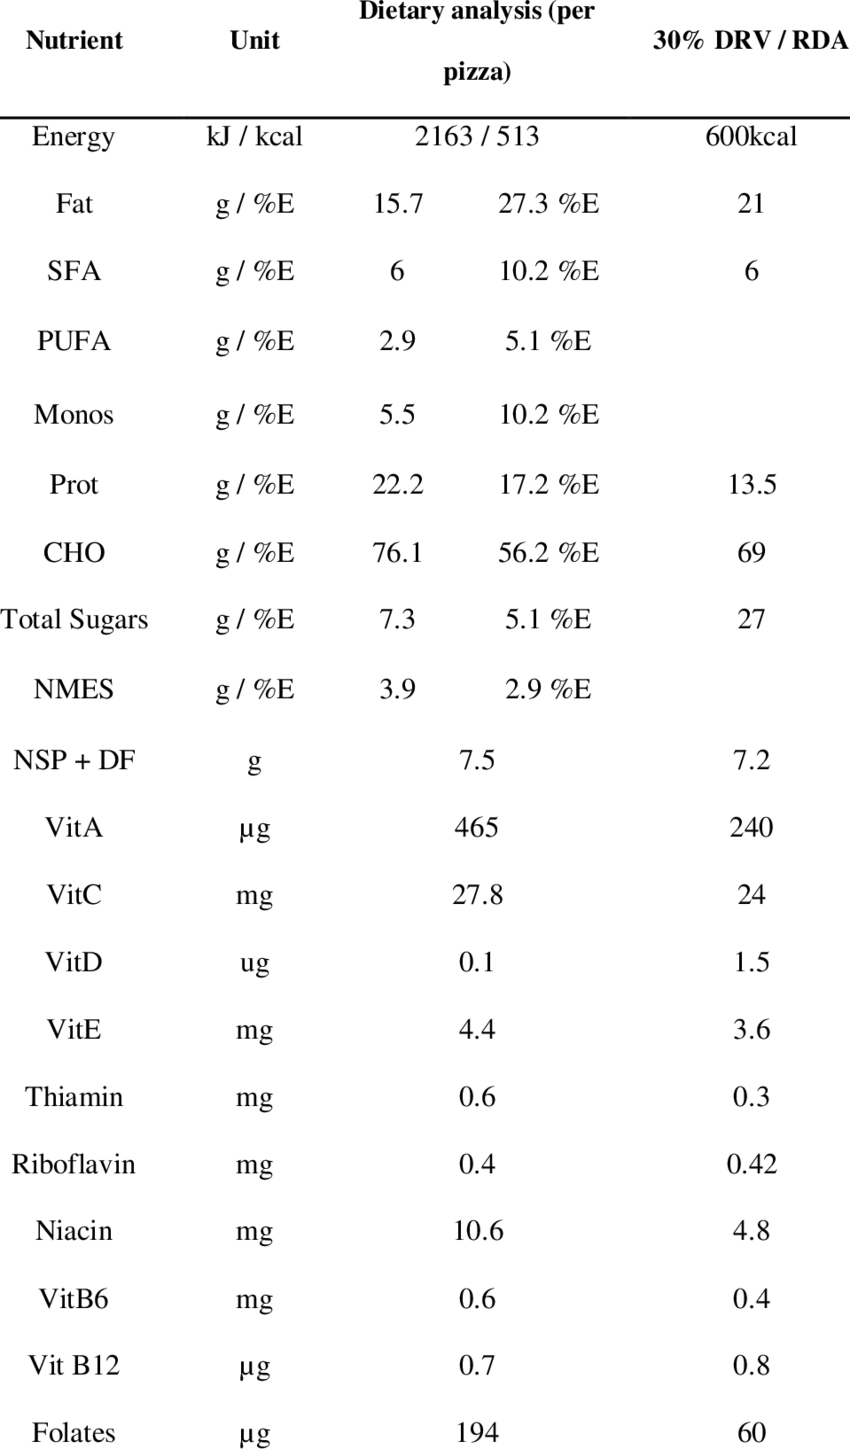 Full nutritional analysis, estimated from food composition